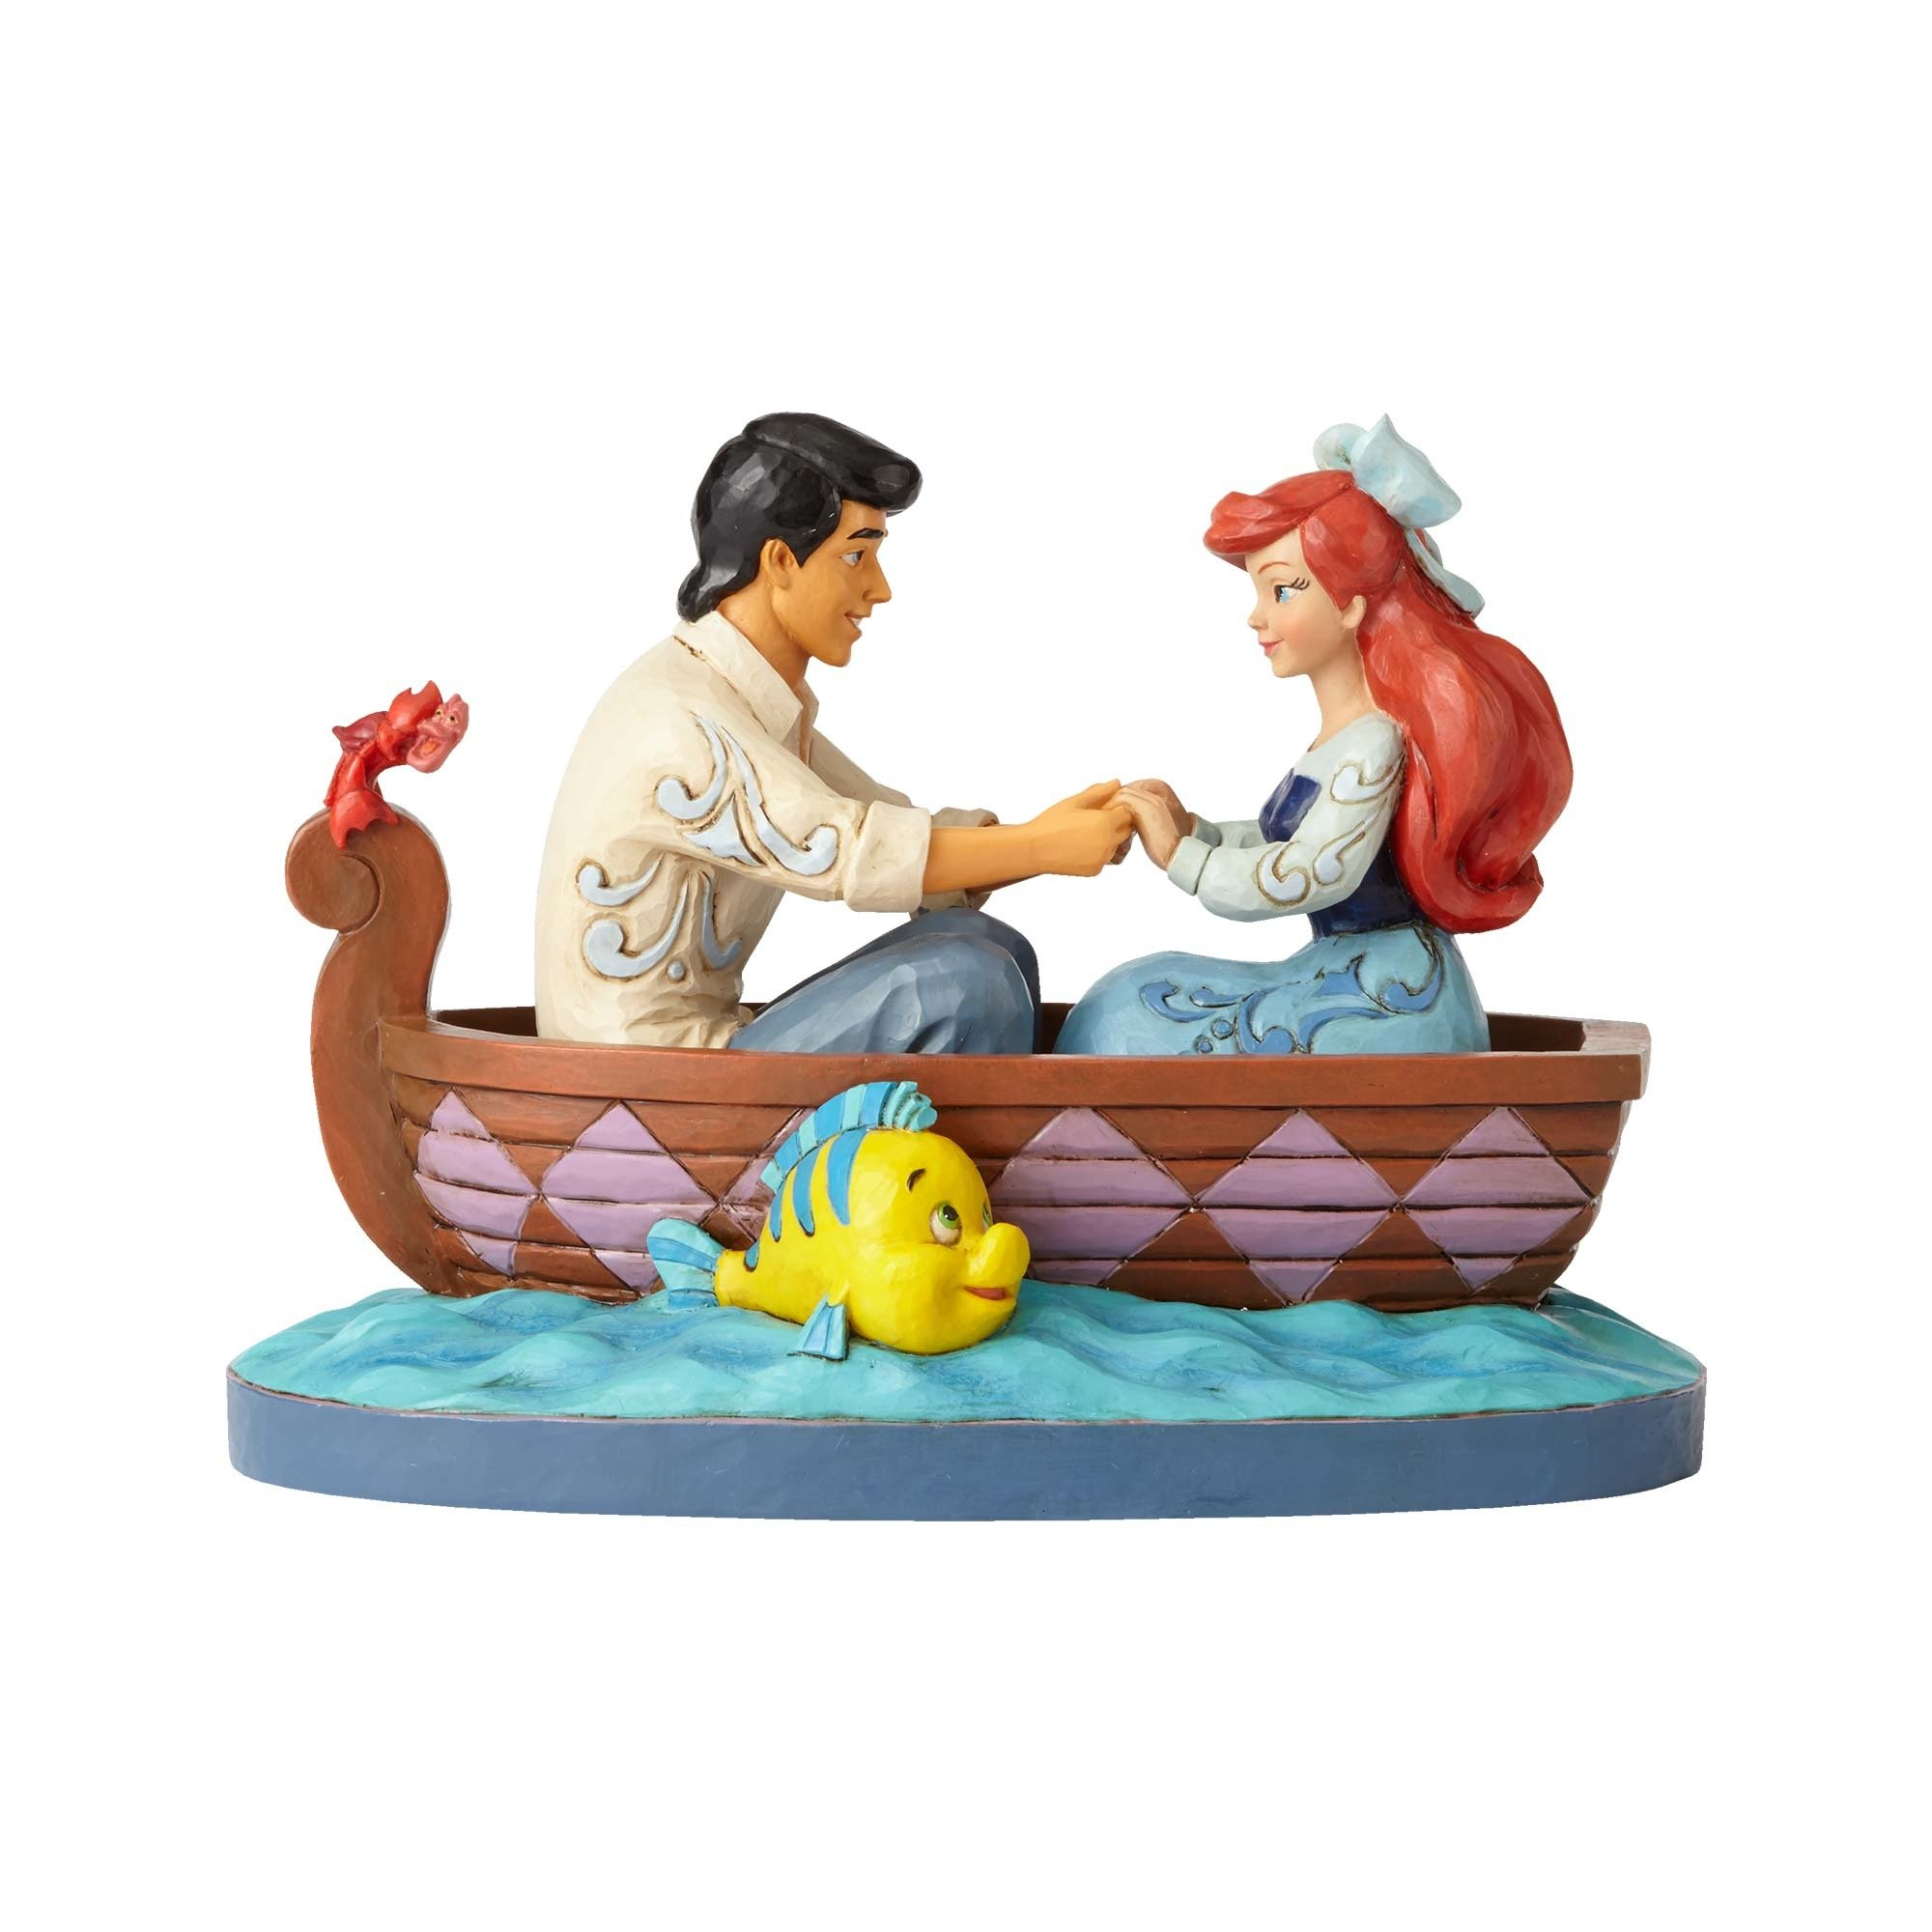 Enesco Jim Shore Disney Traditions Ariel and Prince Eric in Rowboat Figurine by Enesco